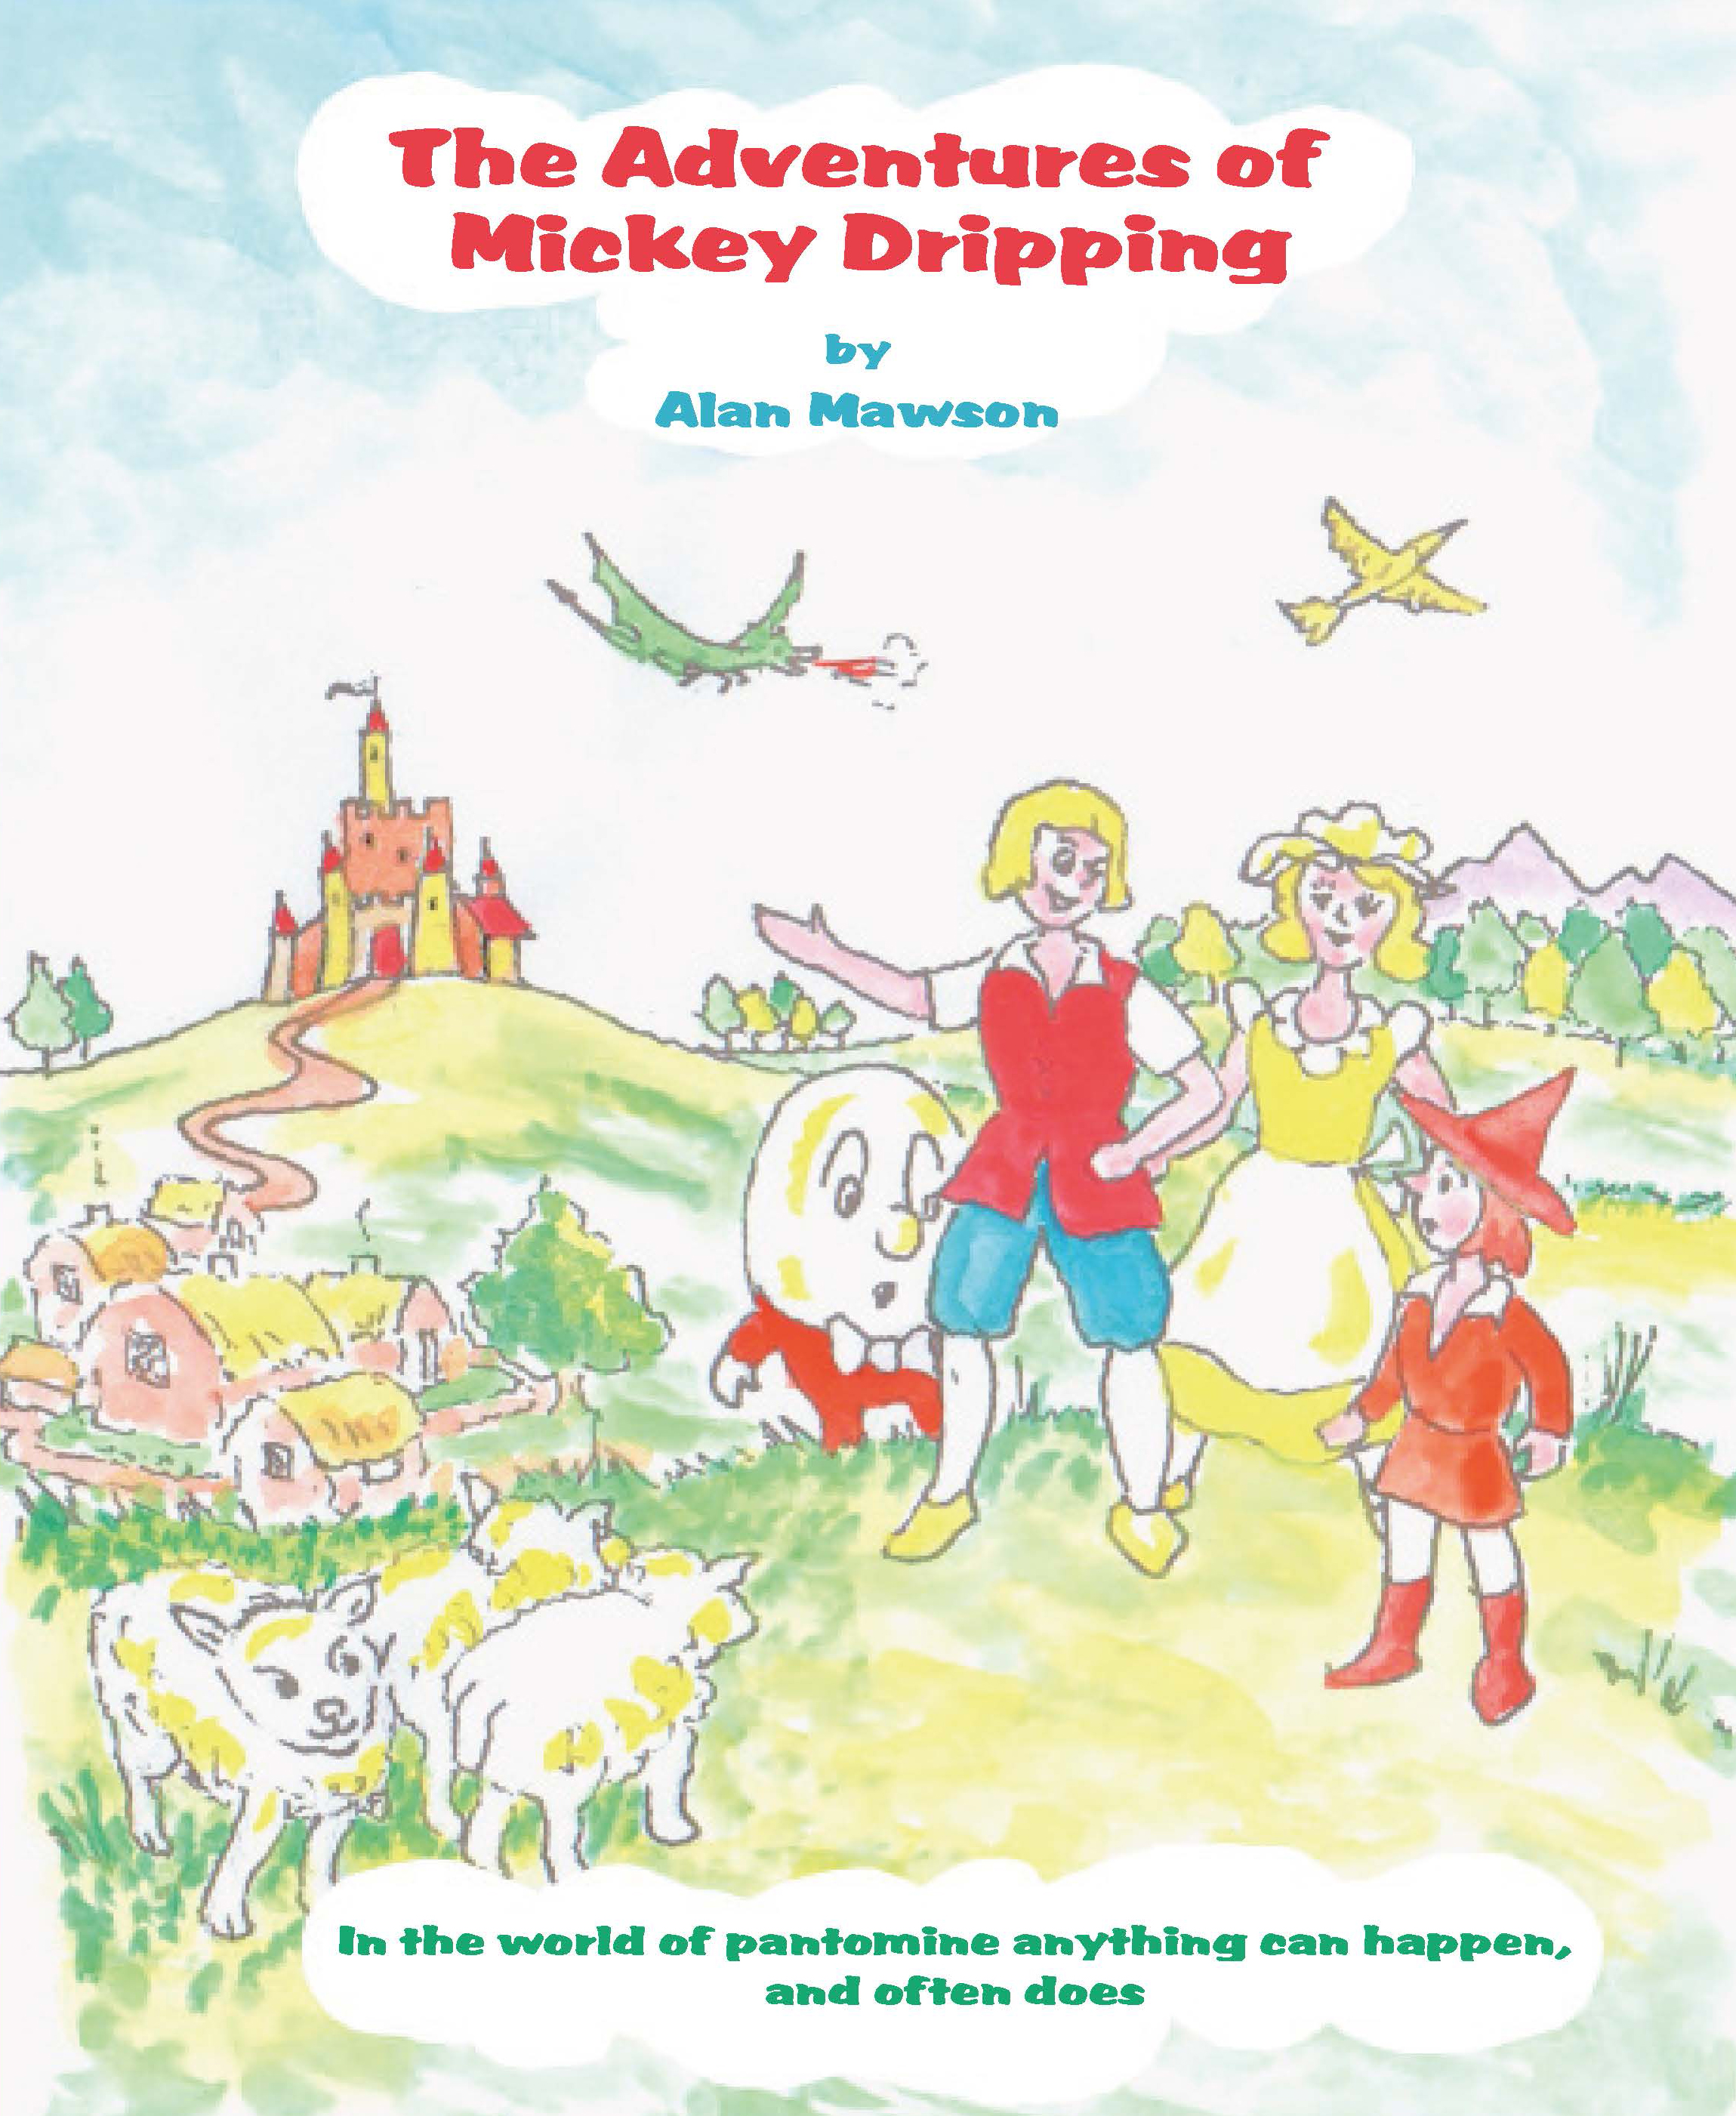 The Adventures of Mickey Dripping